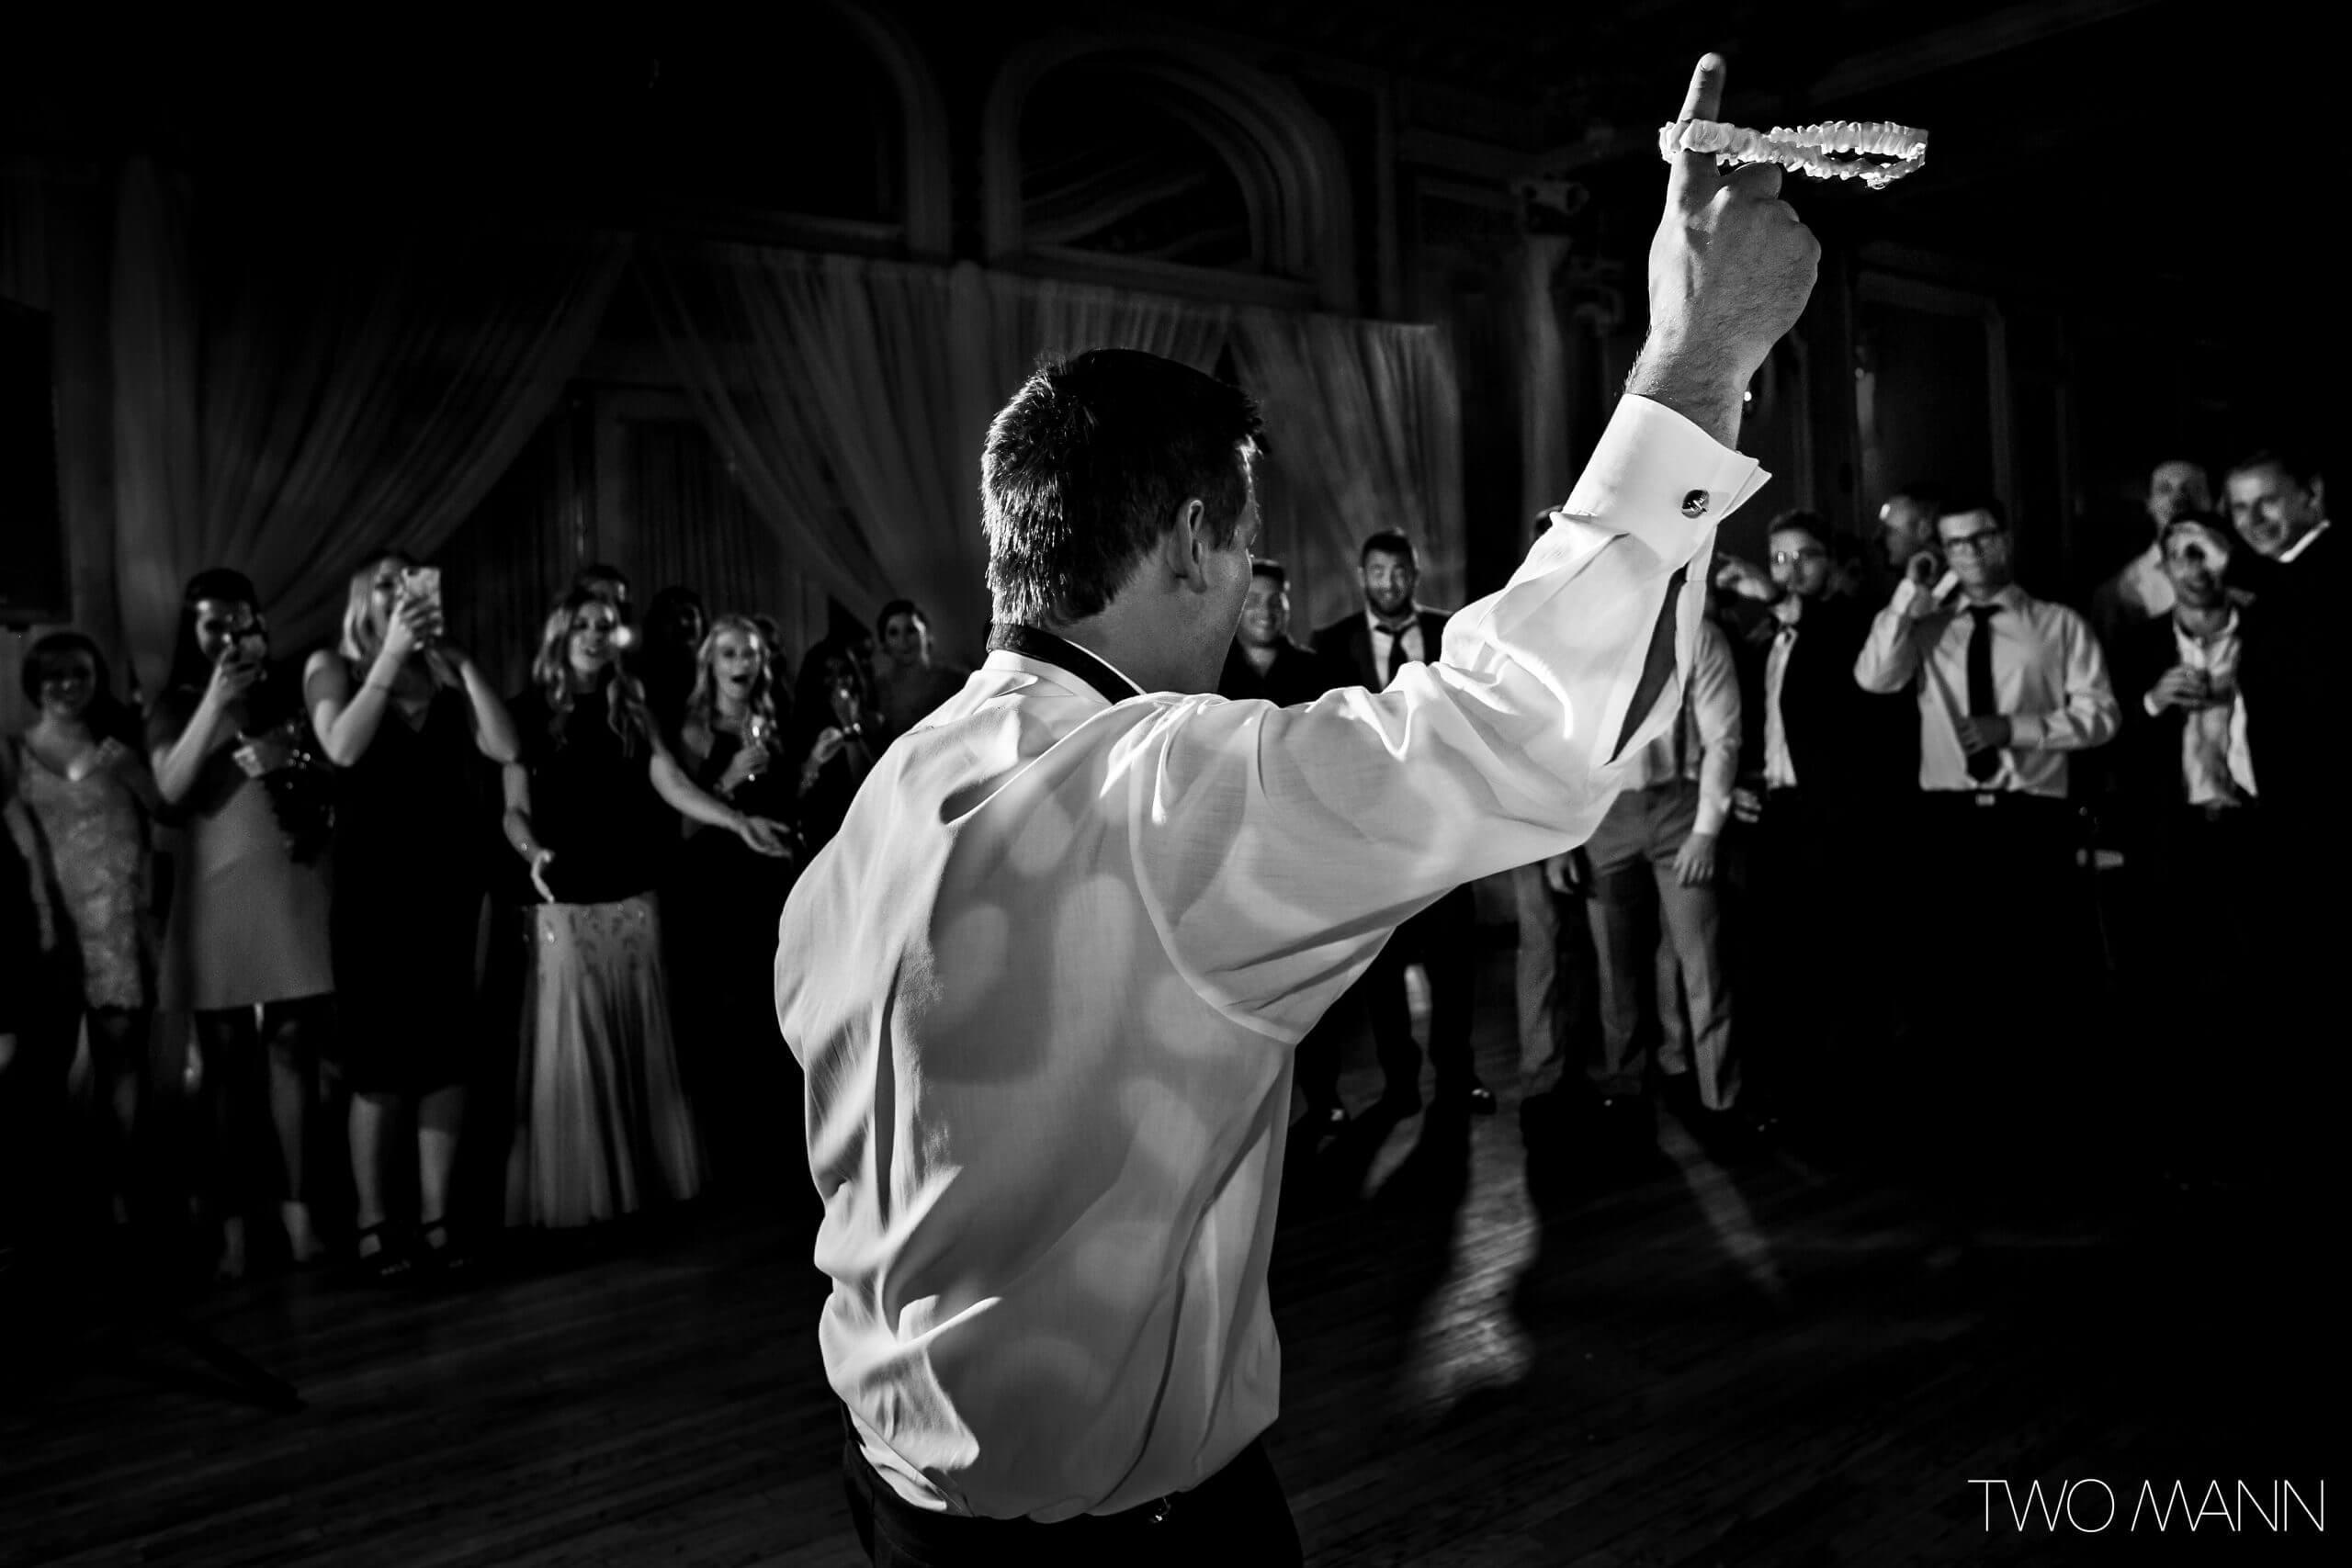 guests cheer the groom on his dance